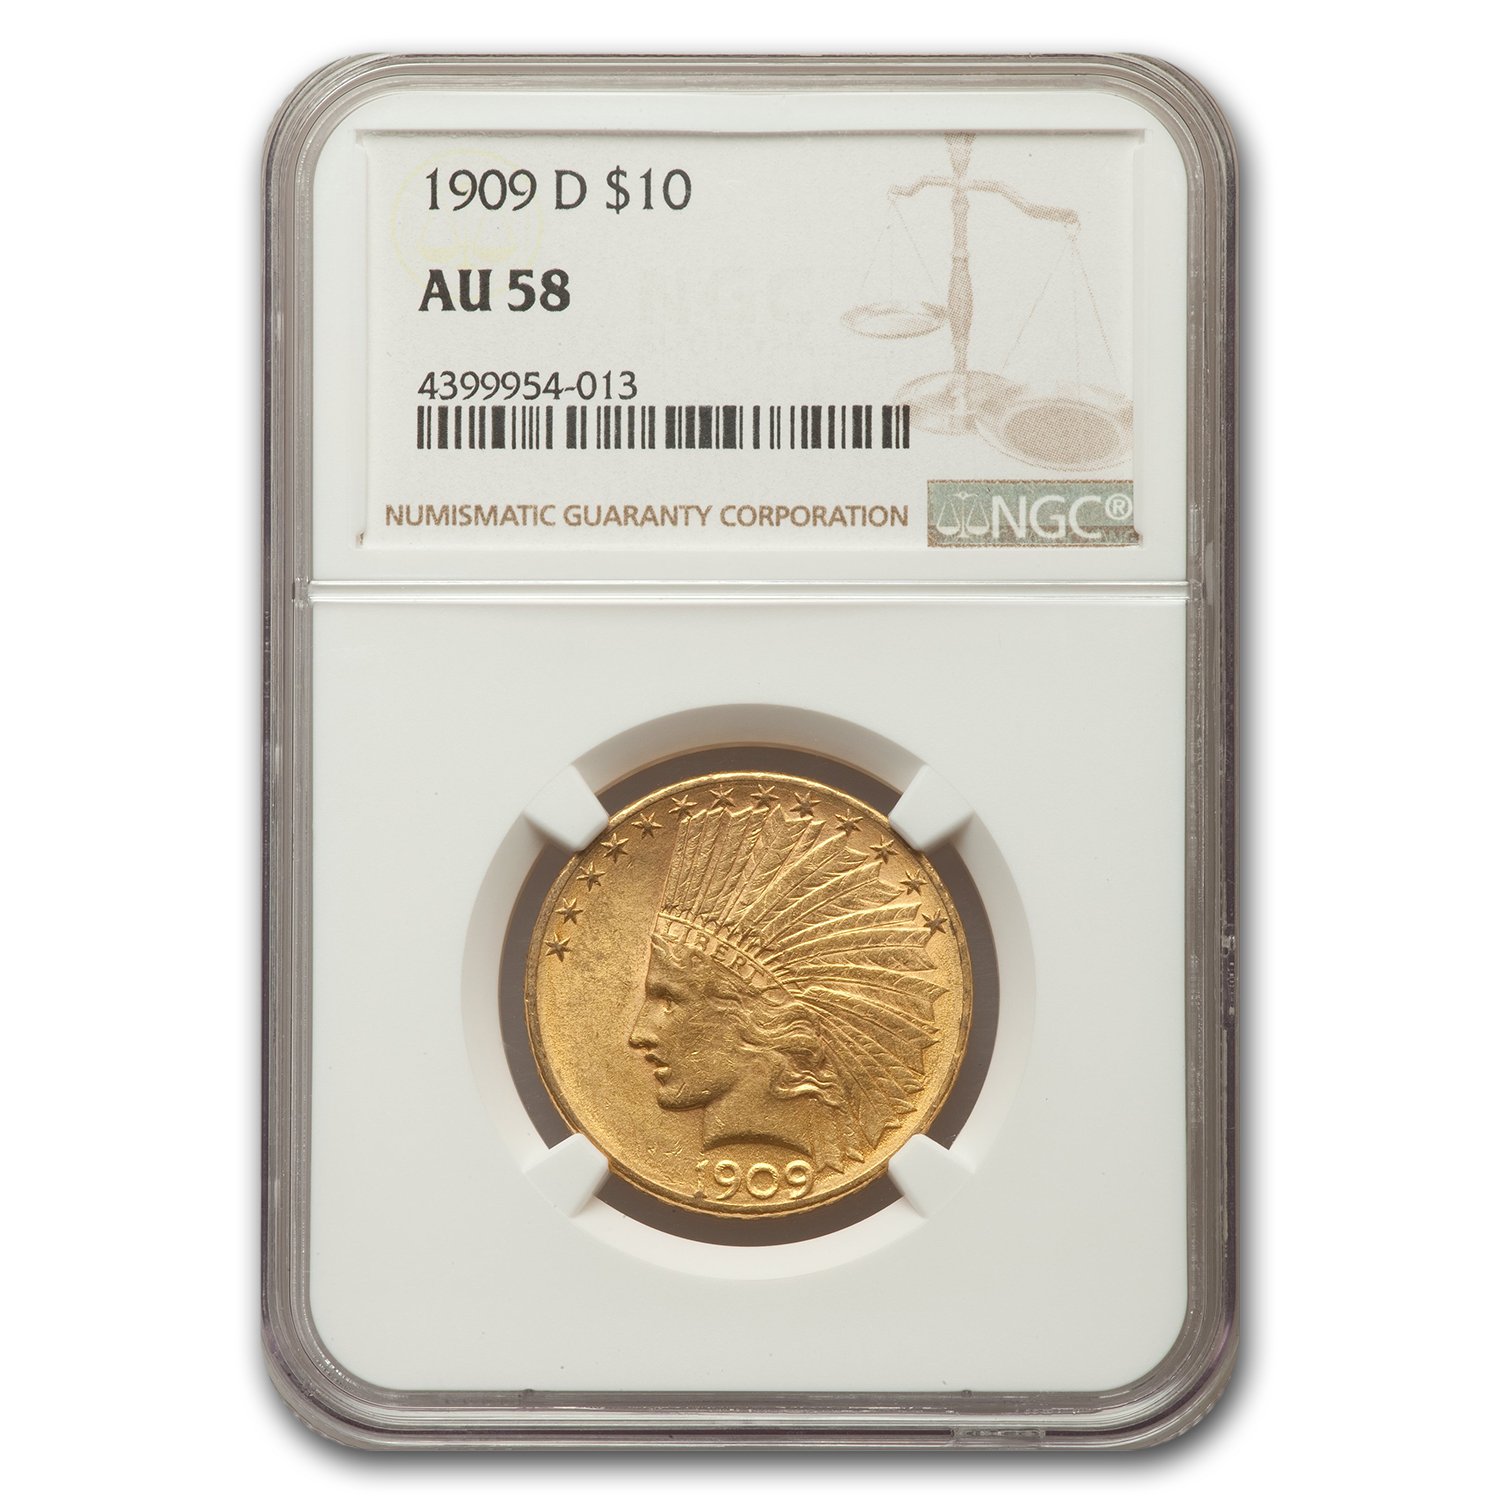 1909-D $10 Indian Gold Eagle Almost Unc - 58 NGC